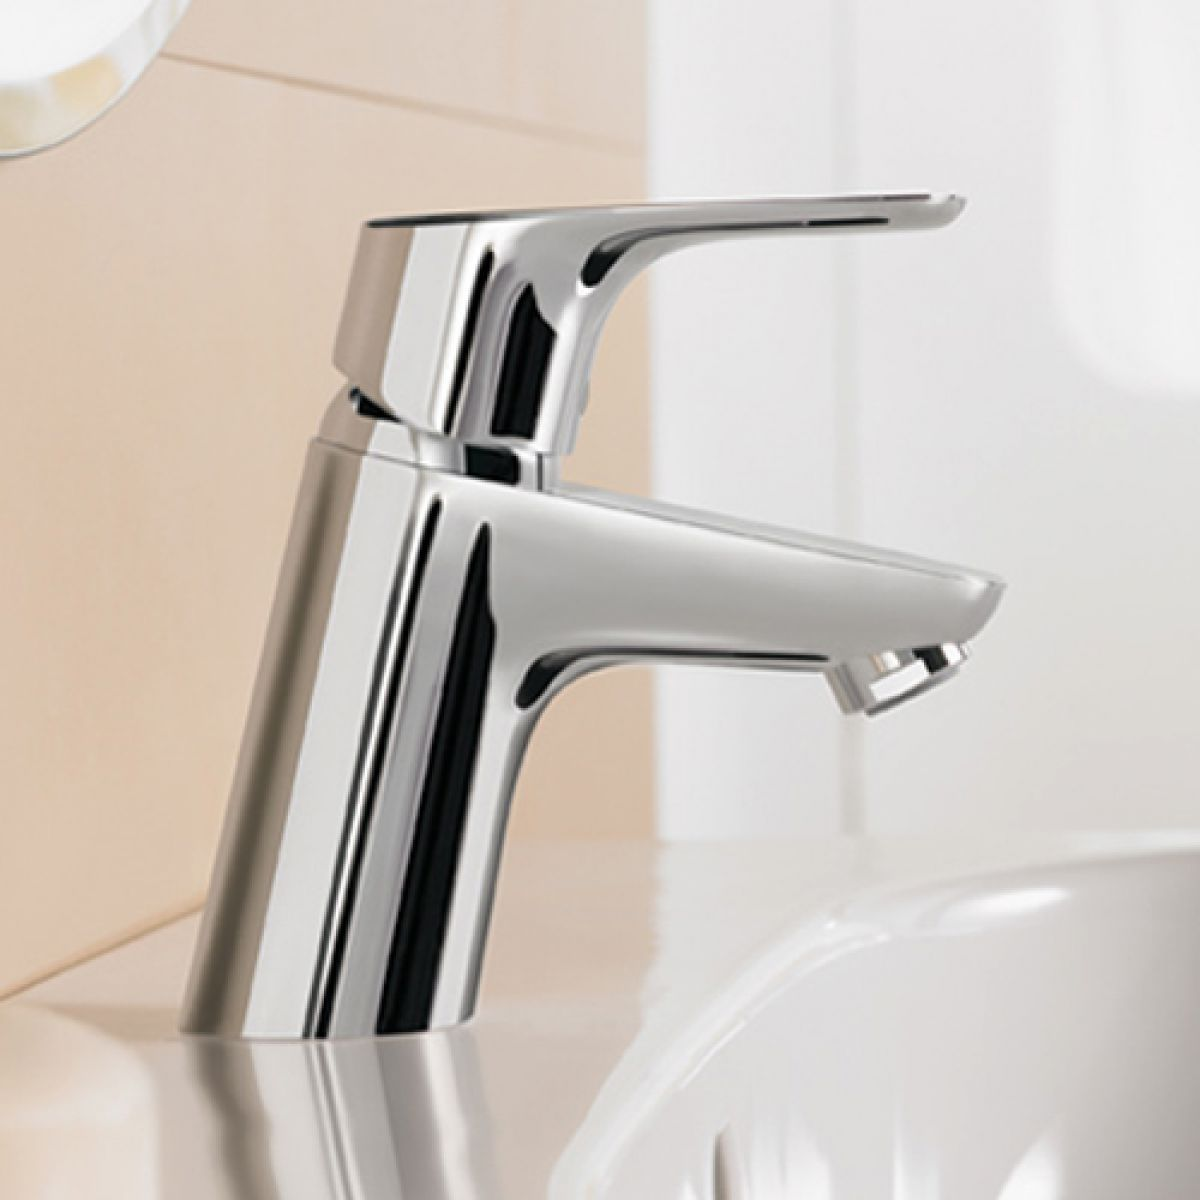 hansgrohe focus 70 basin mixer tap uk bathrooms. Black Bedroom Furniture Sets. Home Design Ideas